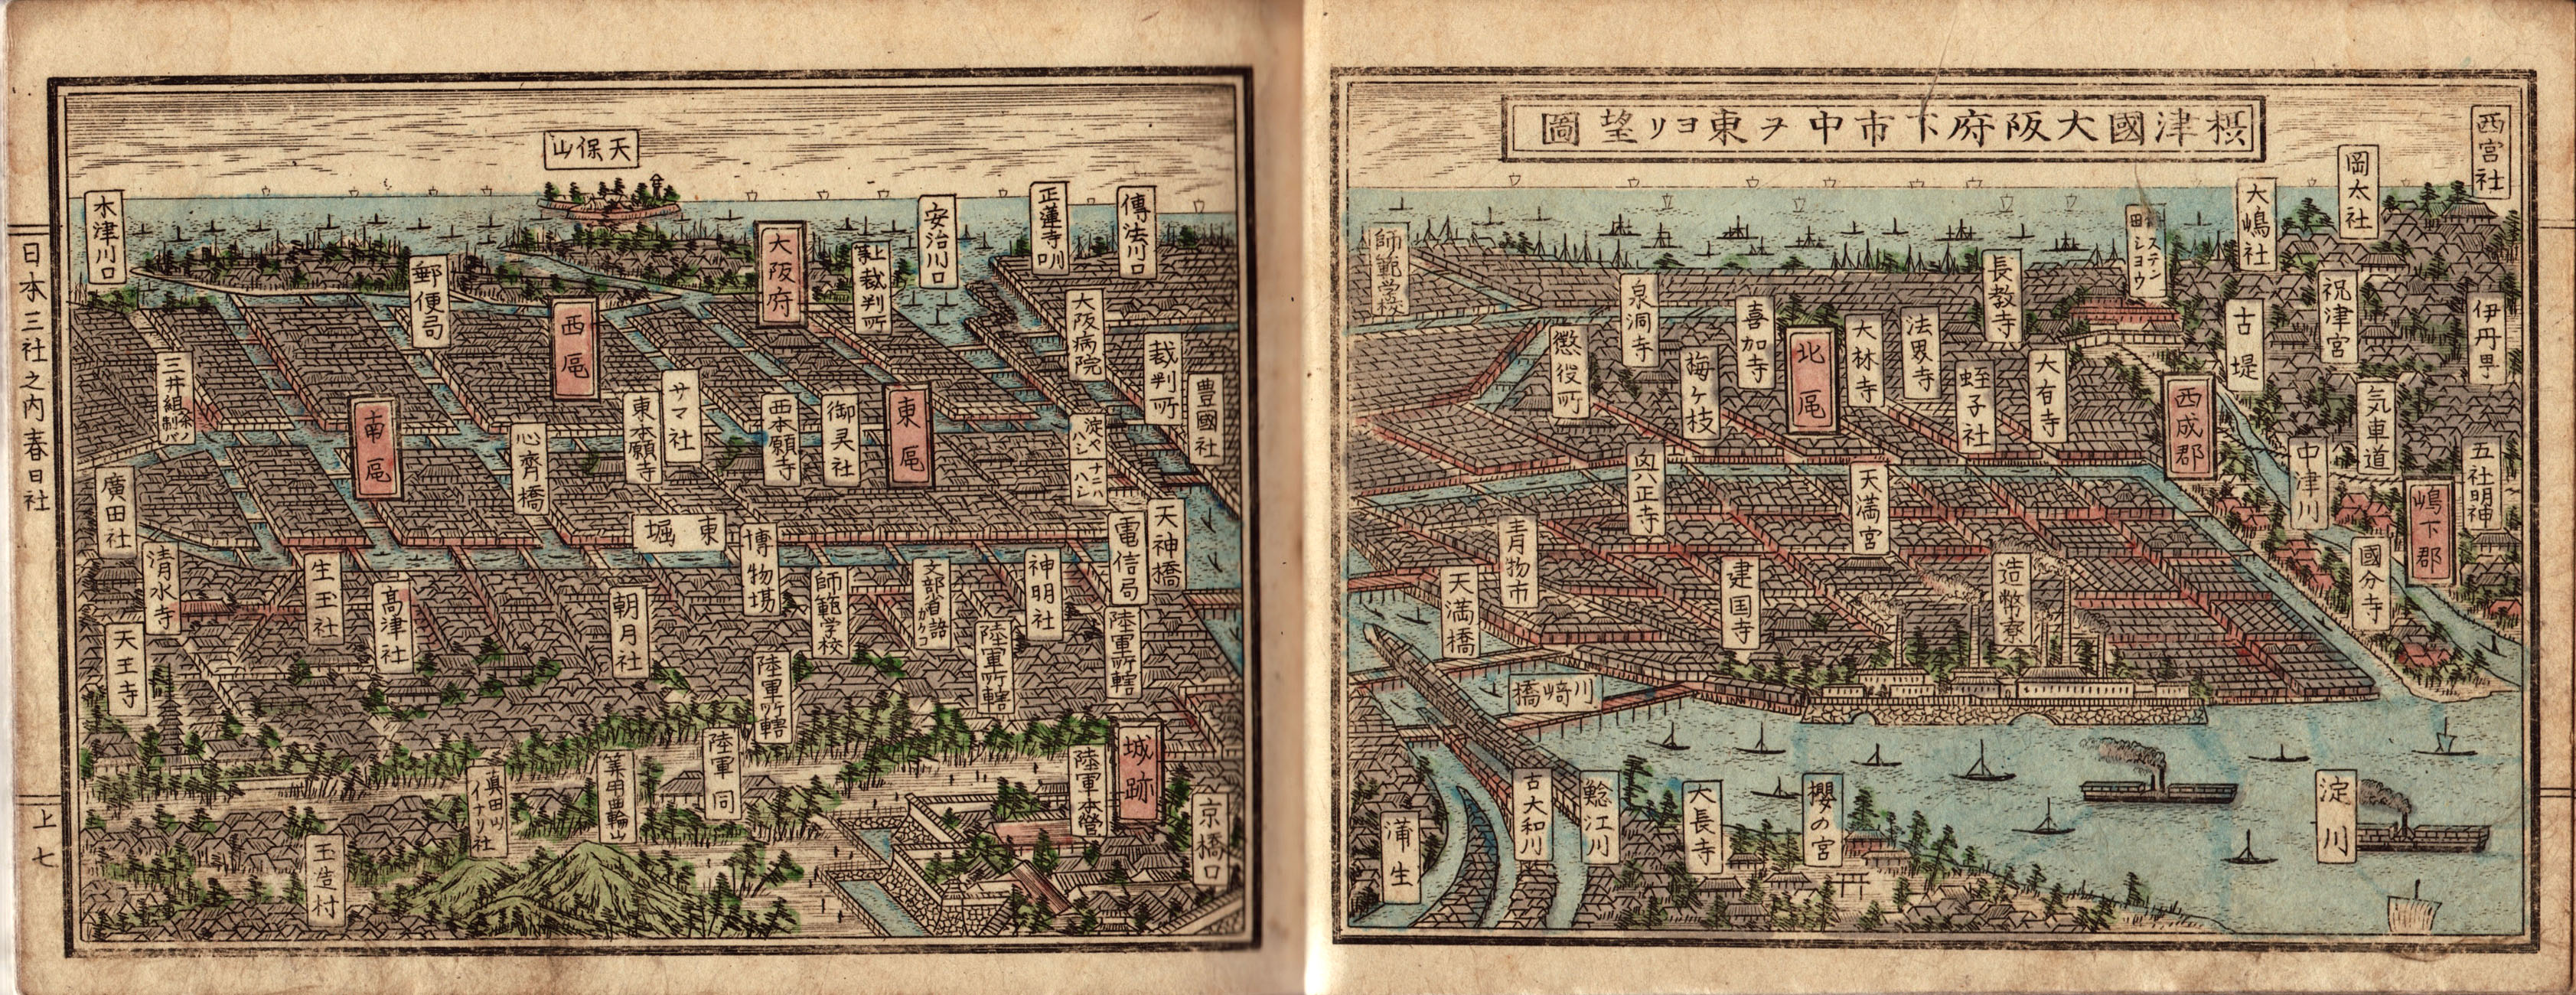 Asia Historical Maps PerryCastañeda Map Collection UT Library - Japan map view